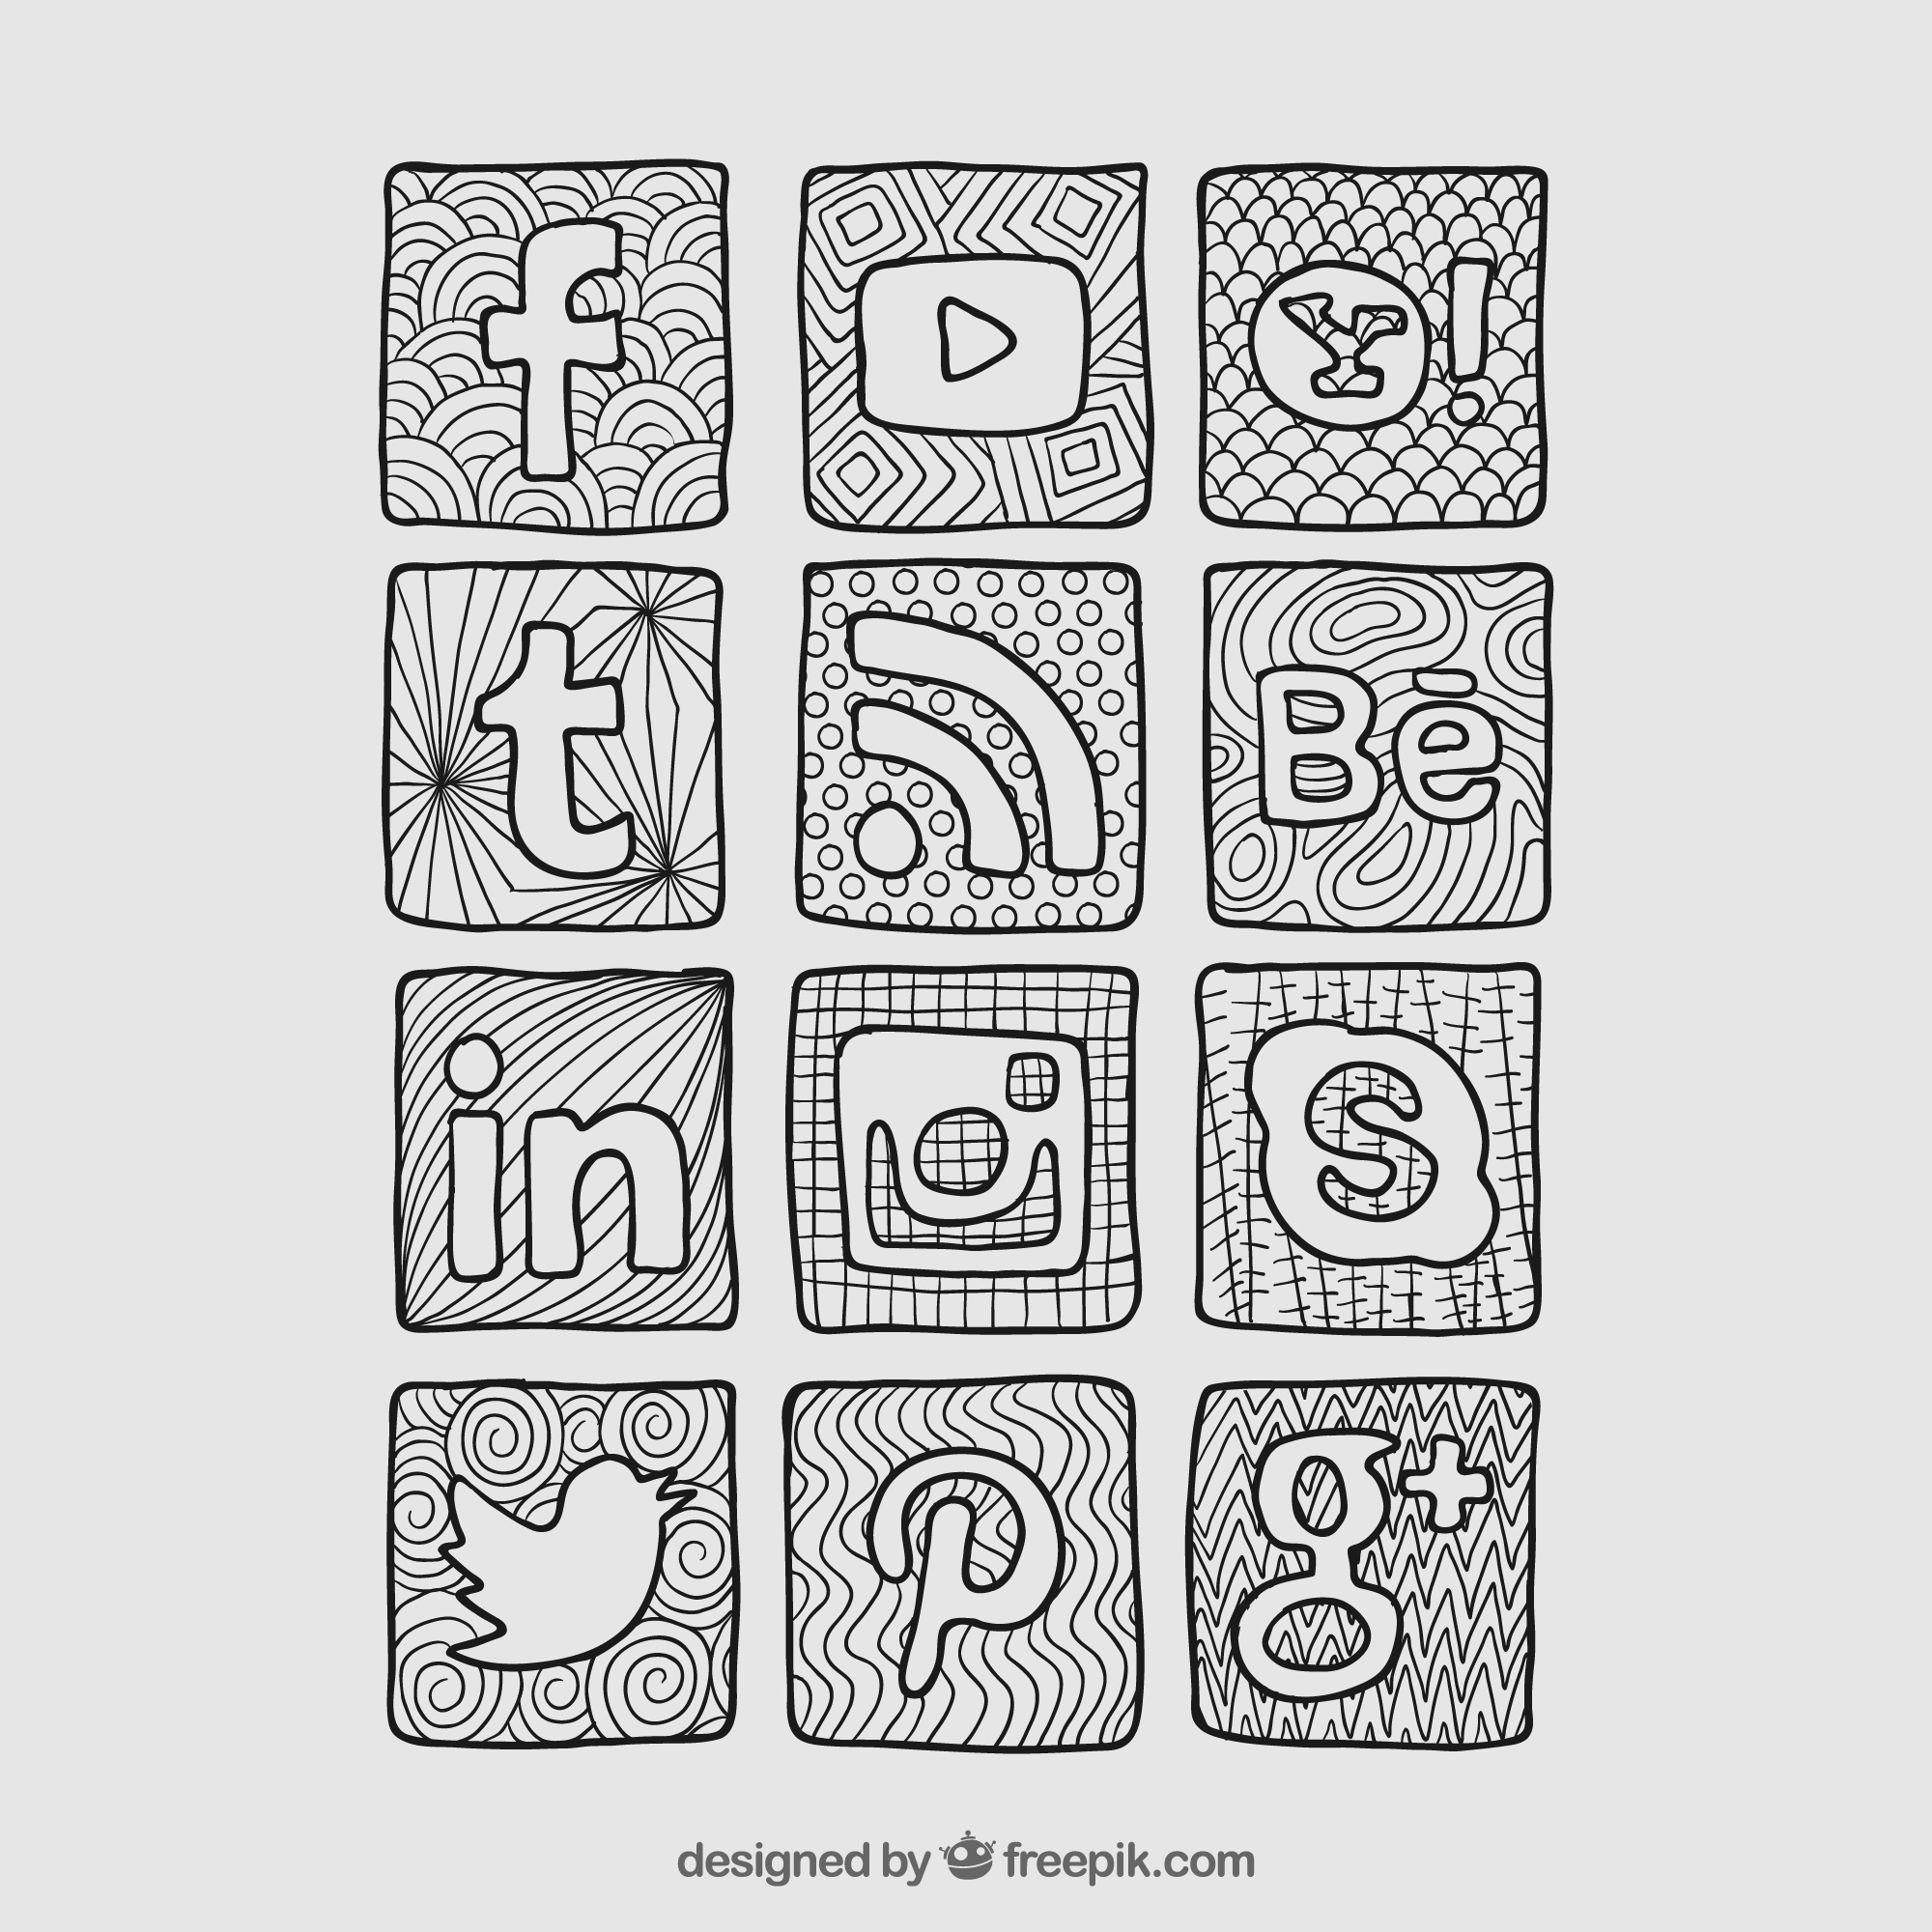 Sketchy social network icons